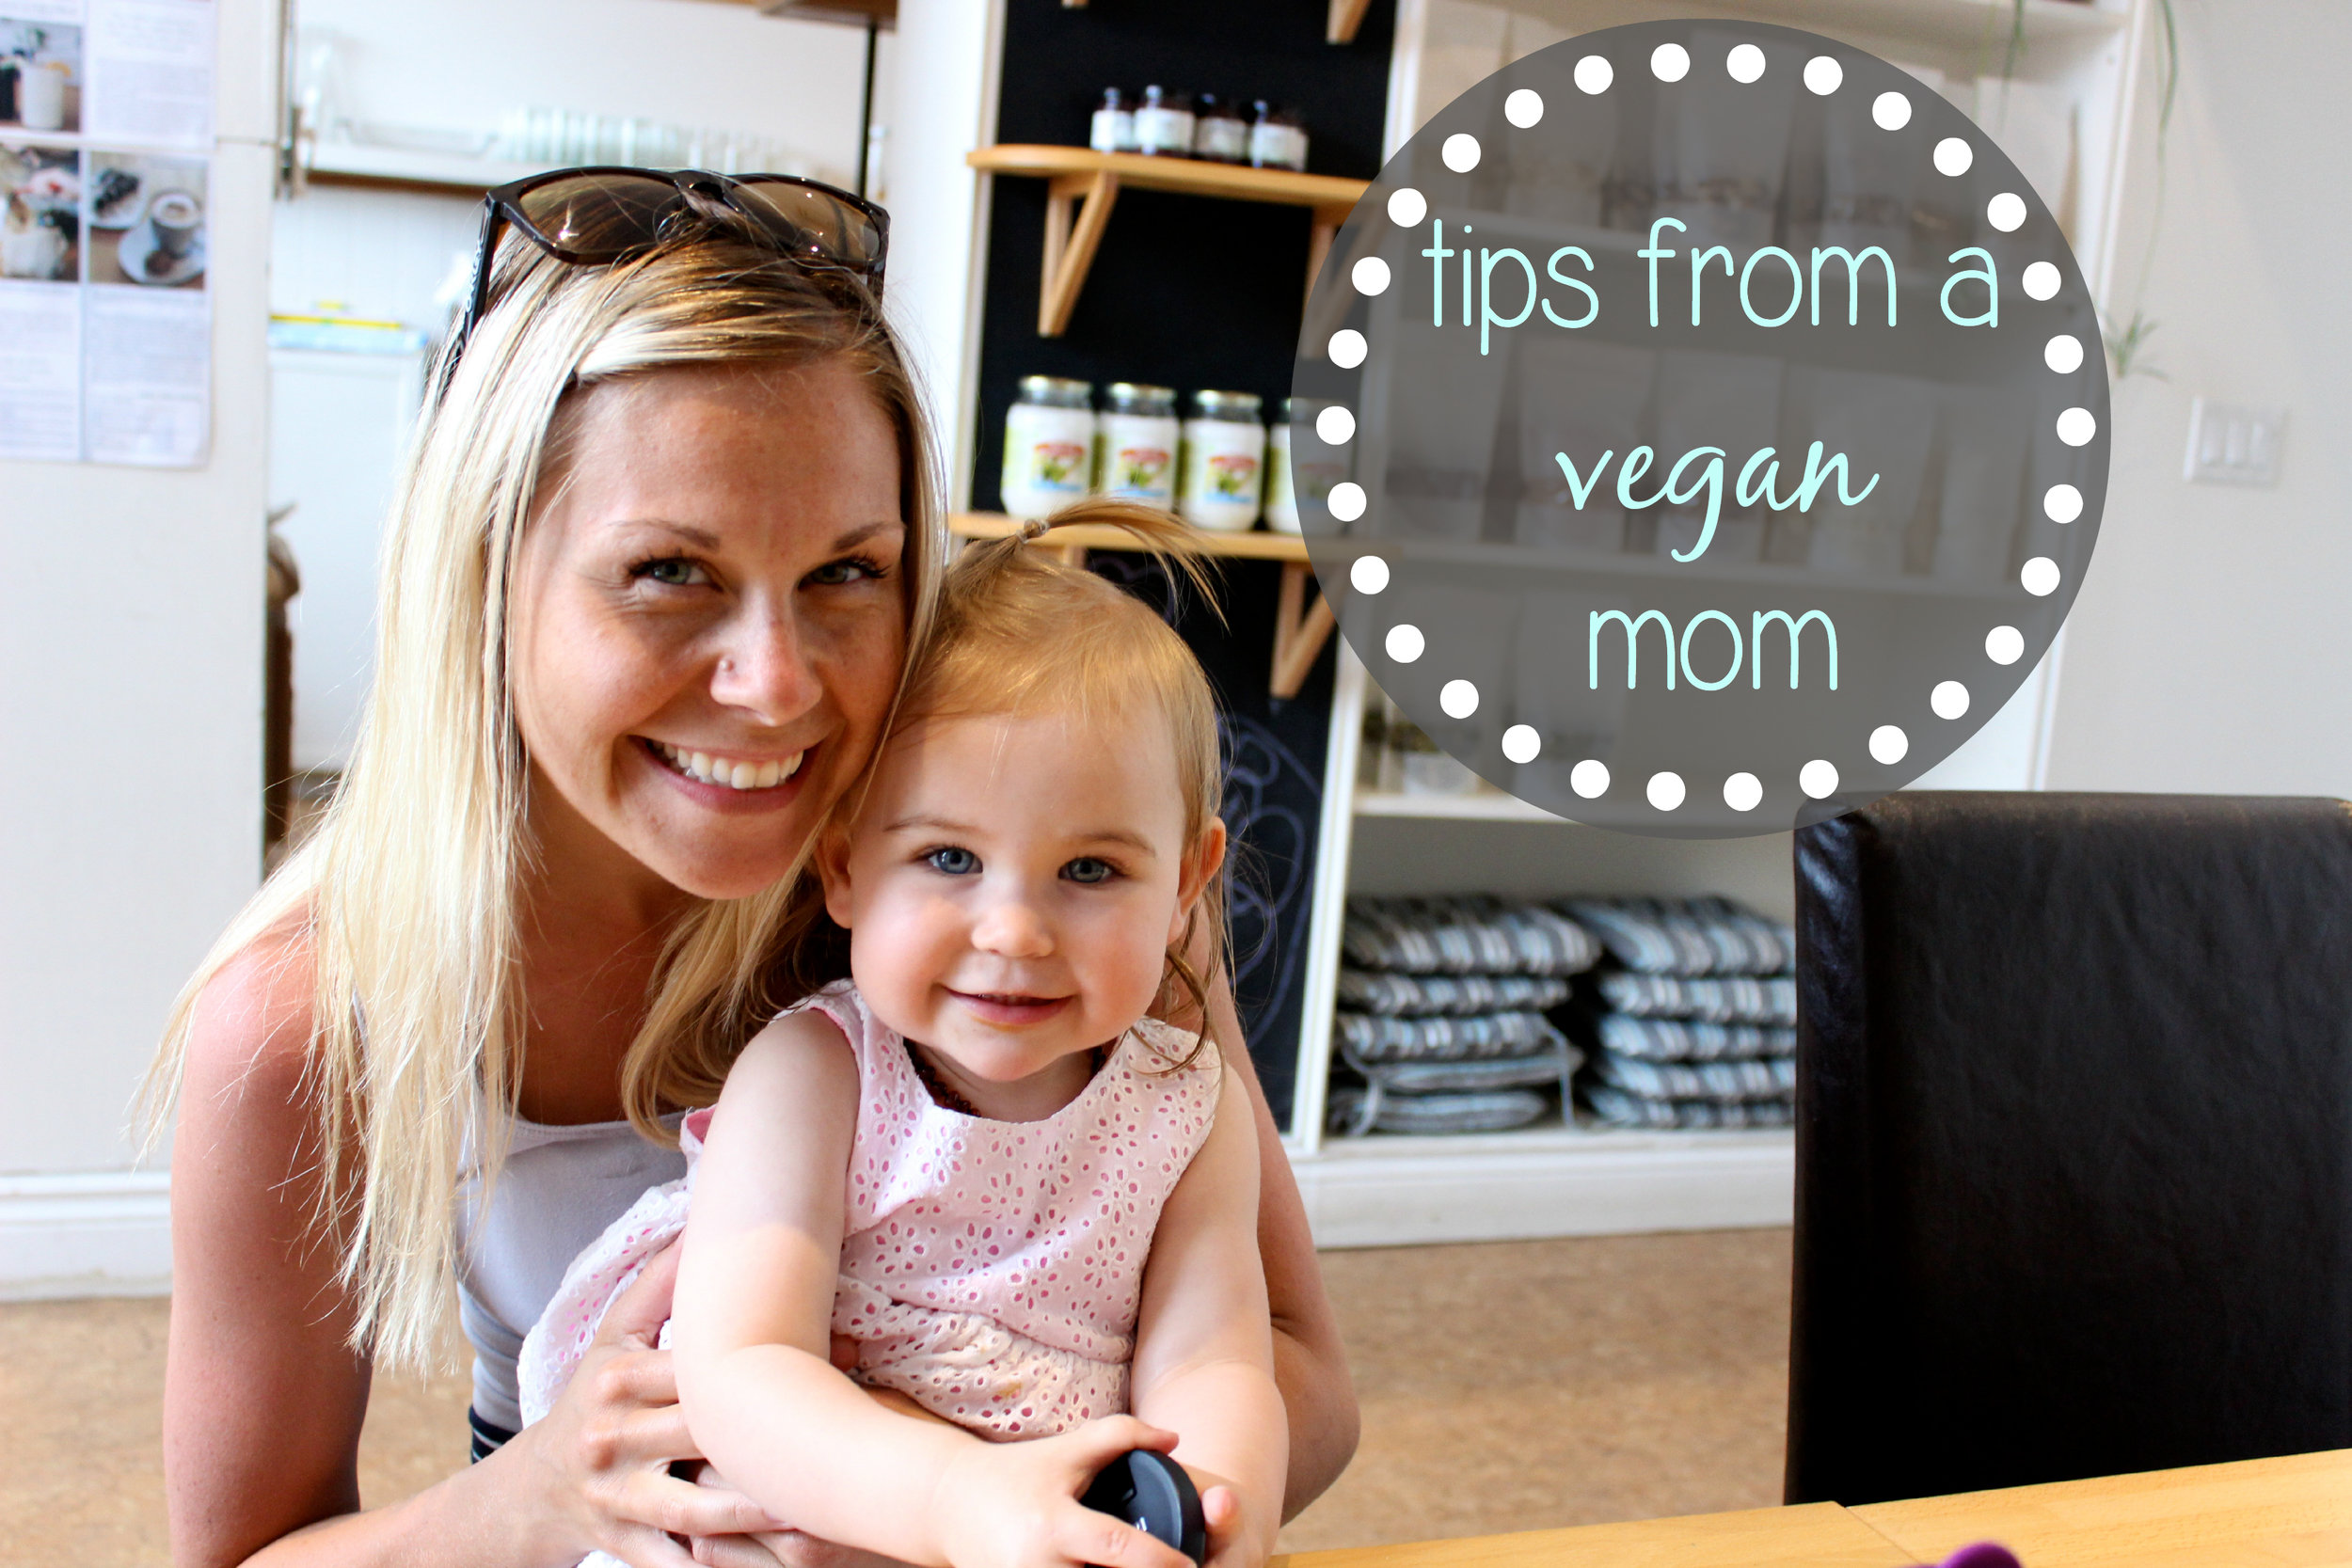 tips from a vegan mom.jpg